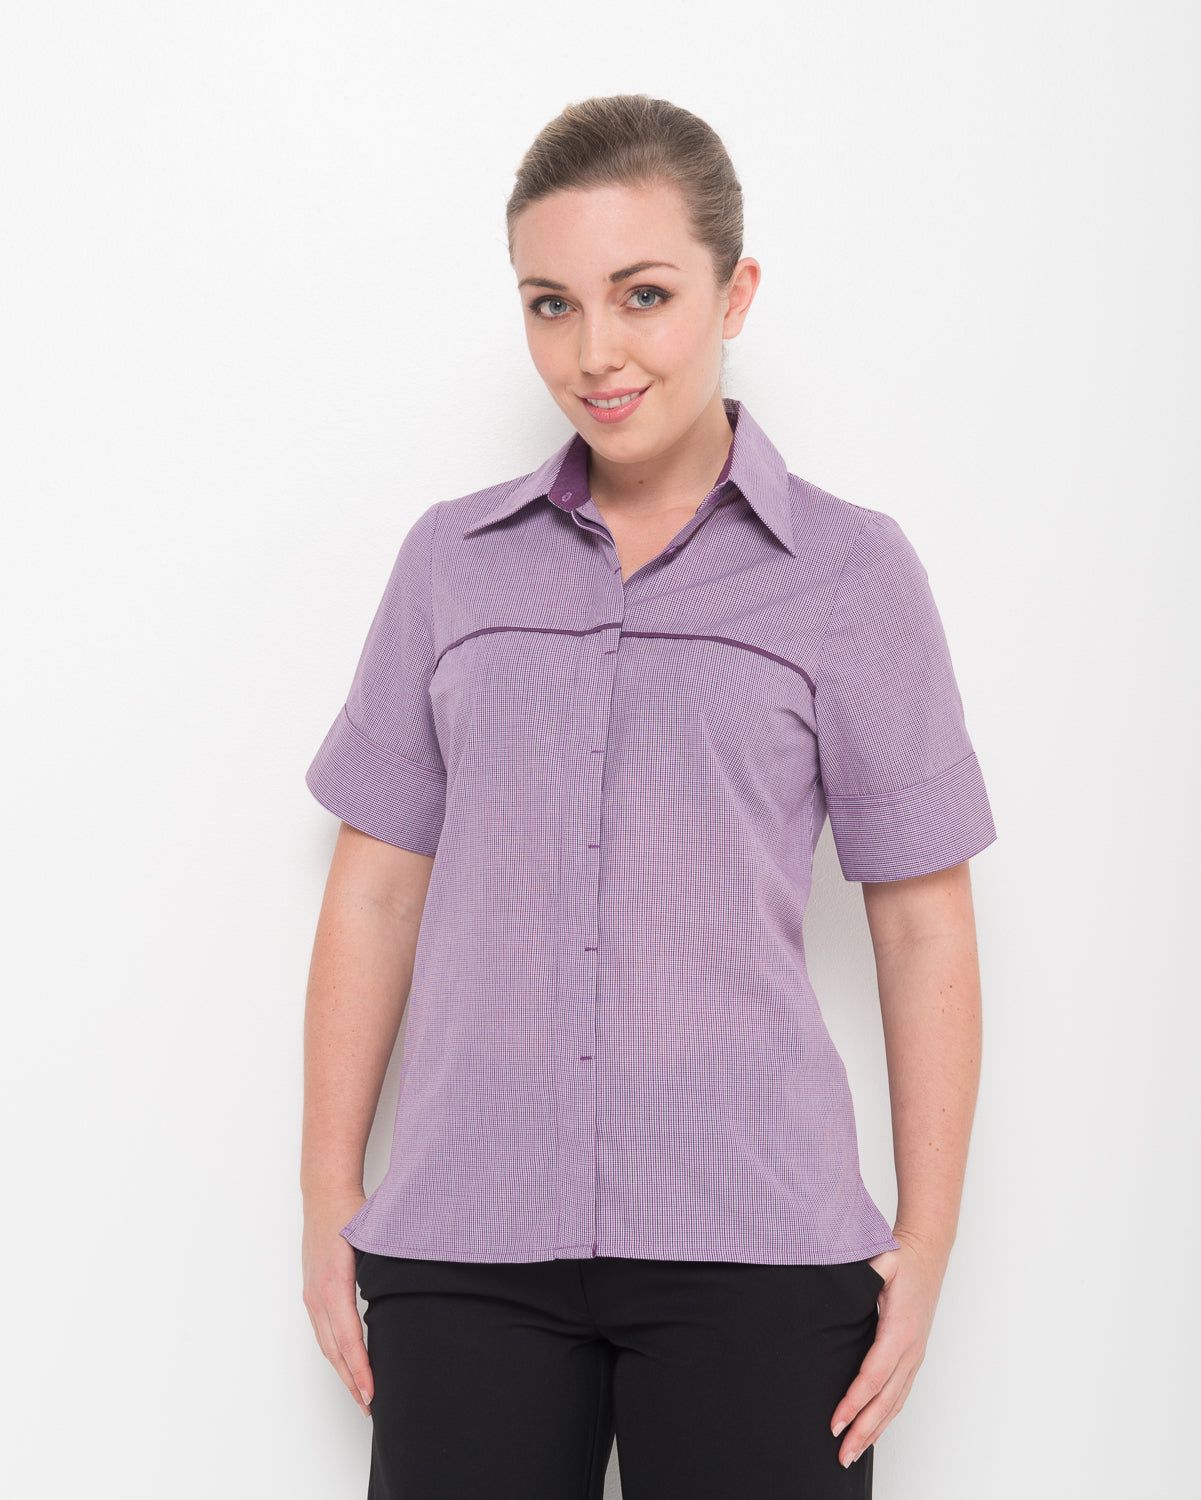 208-LO-PLU: 1/2 sleeve contrast pipping shirt